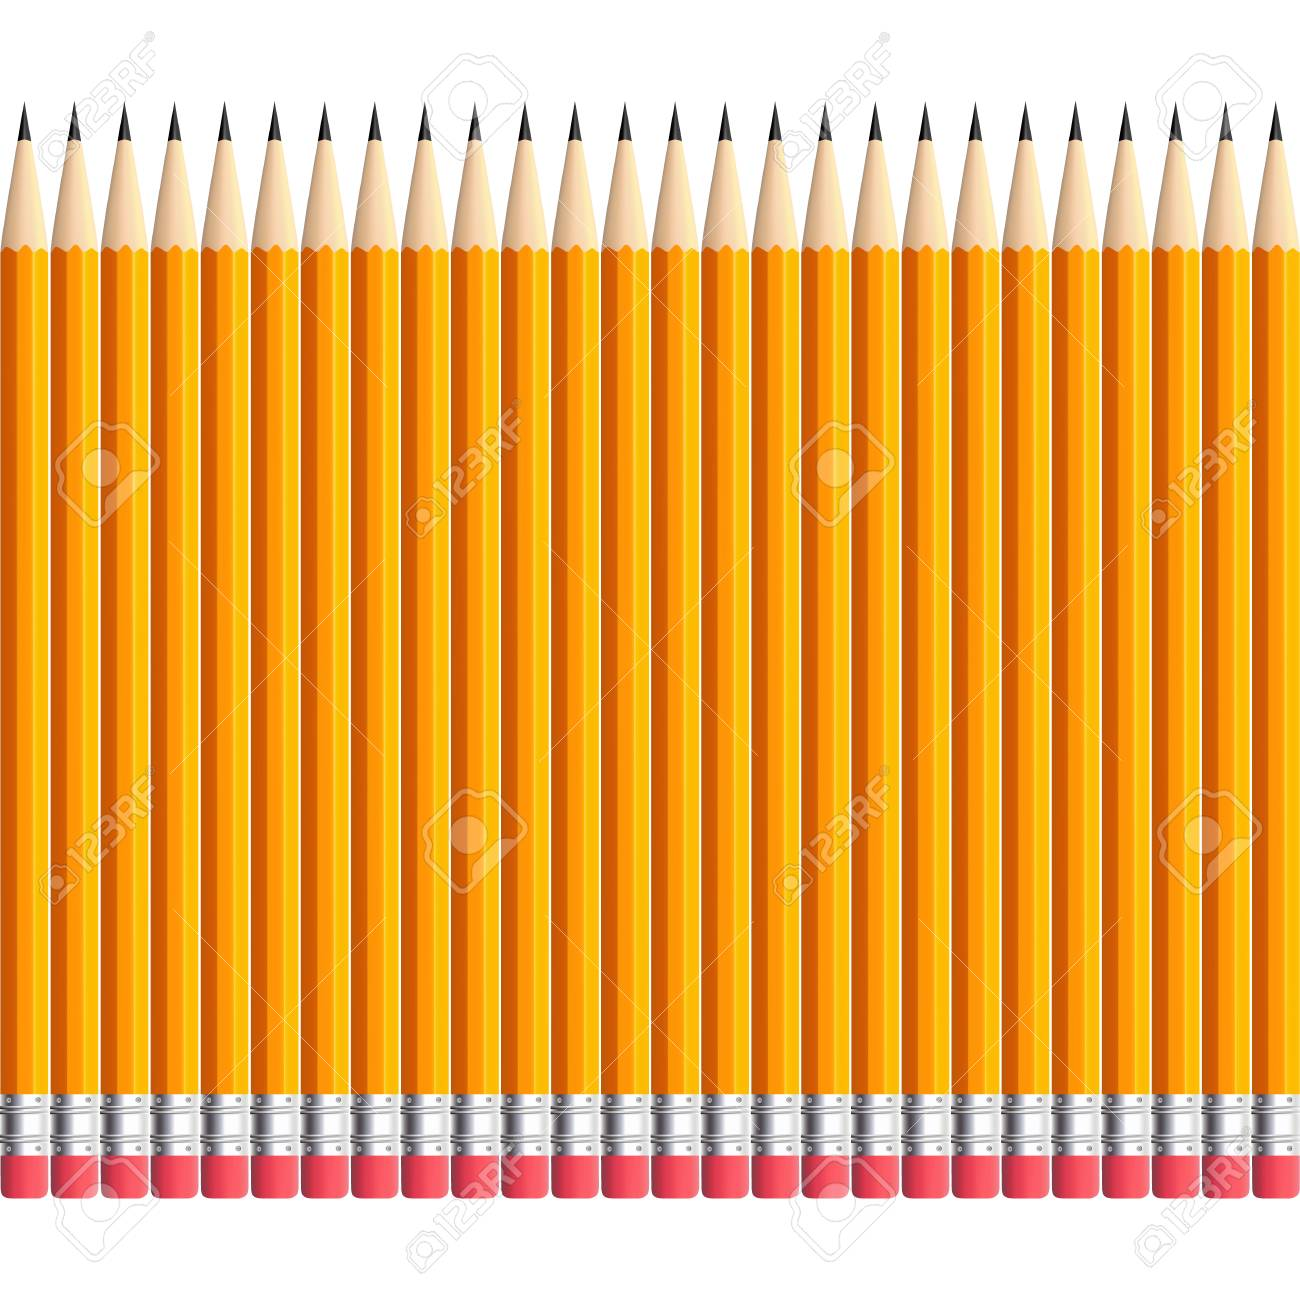 background pencils,vertical pencils pattern for drawing royalty free